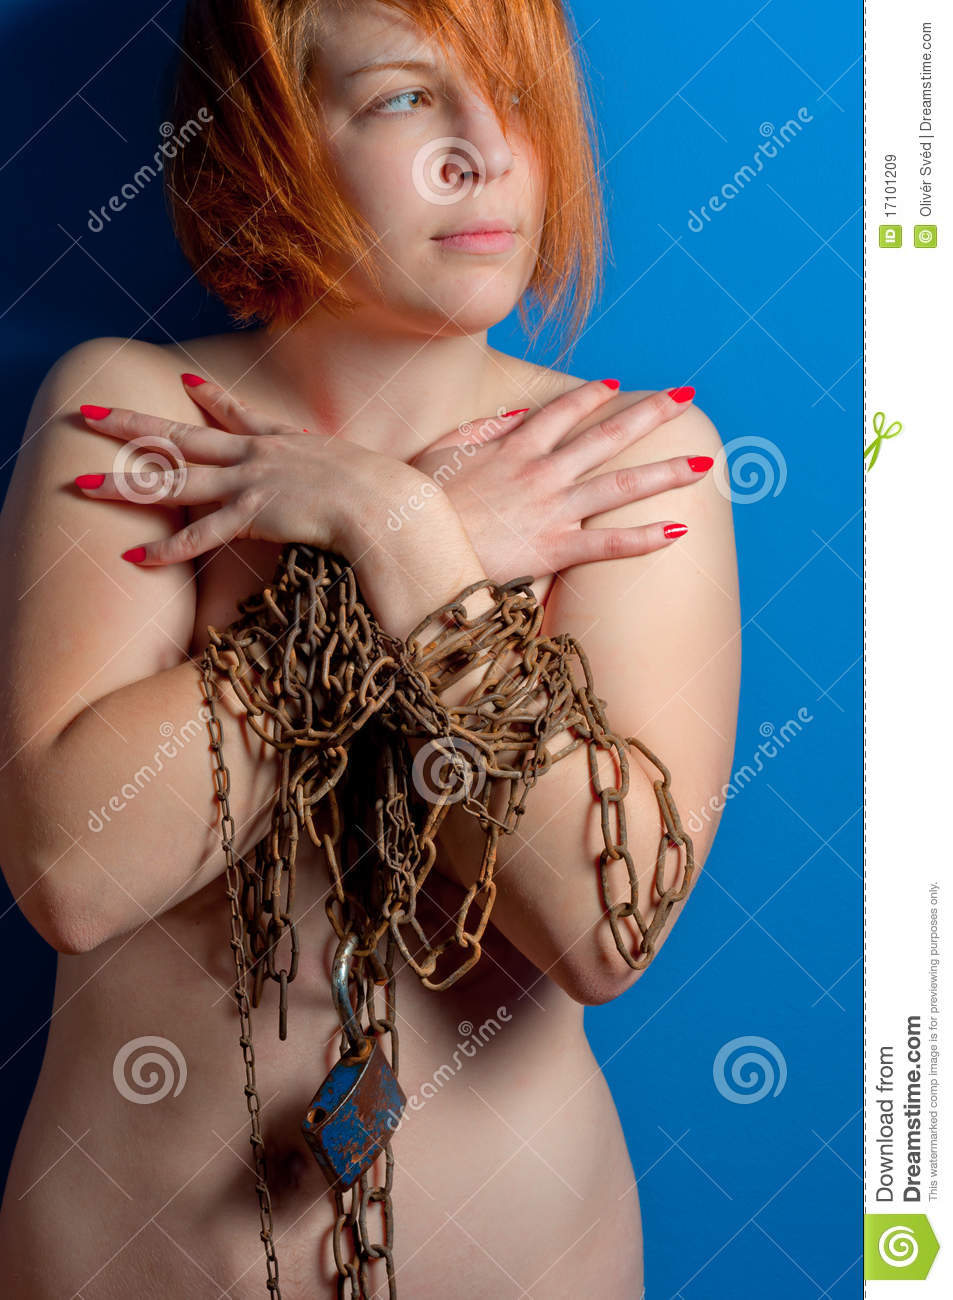 Girl With Chains And Padlock Stock Image Image Of Lean